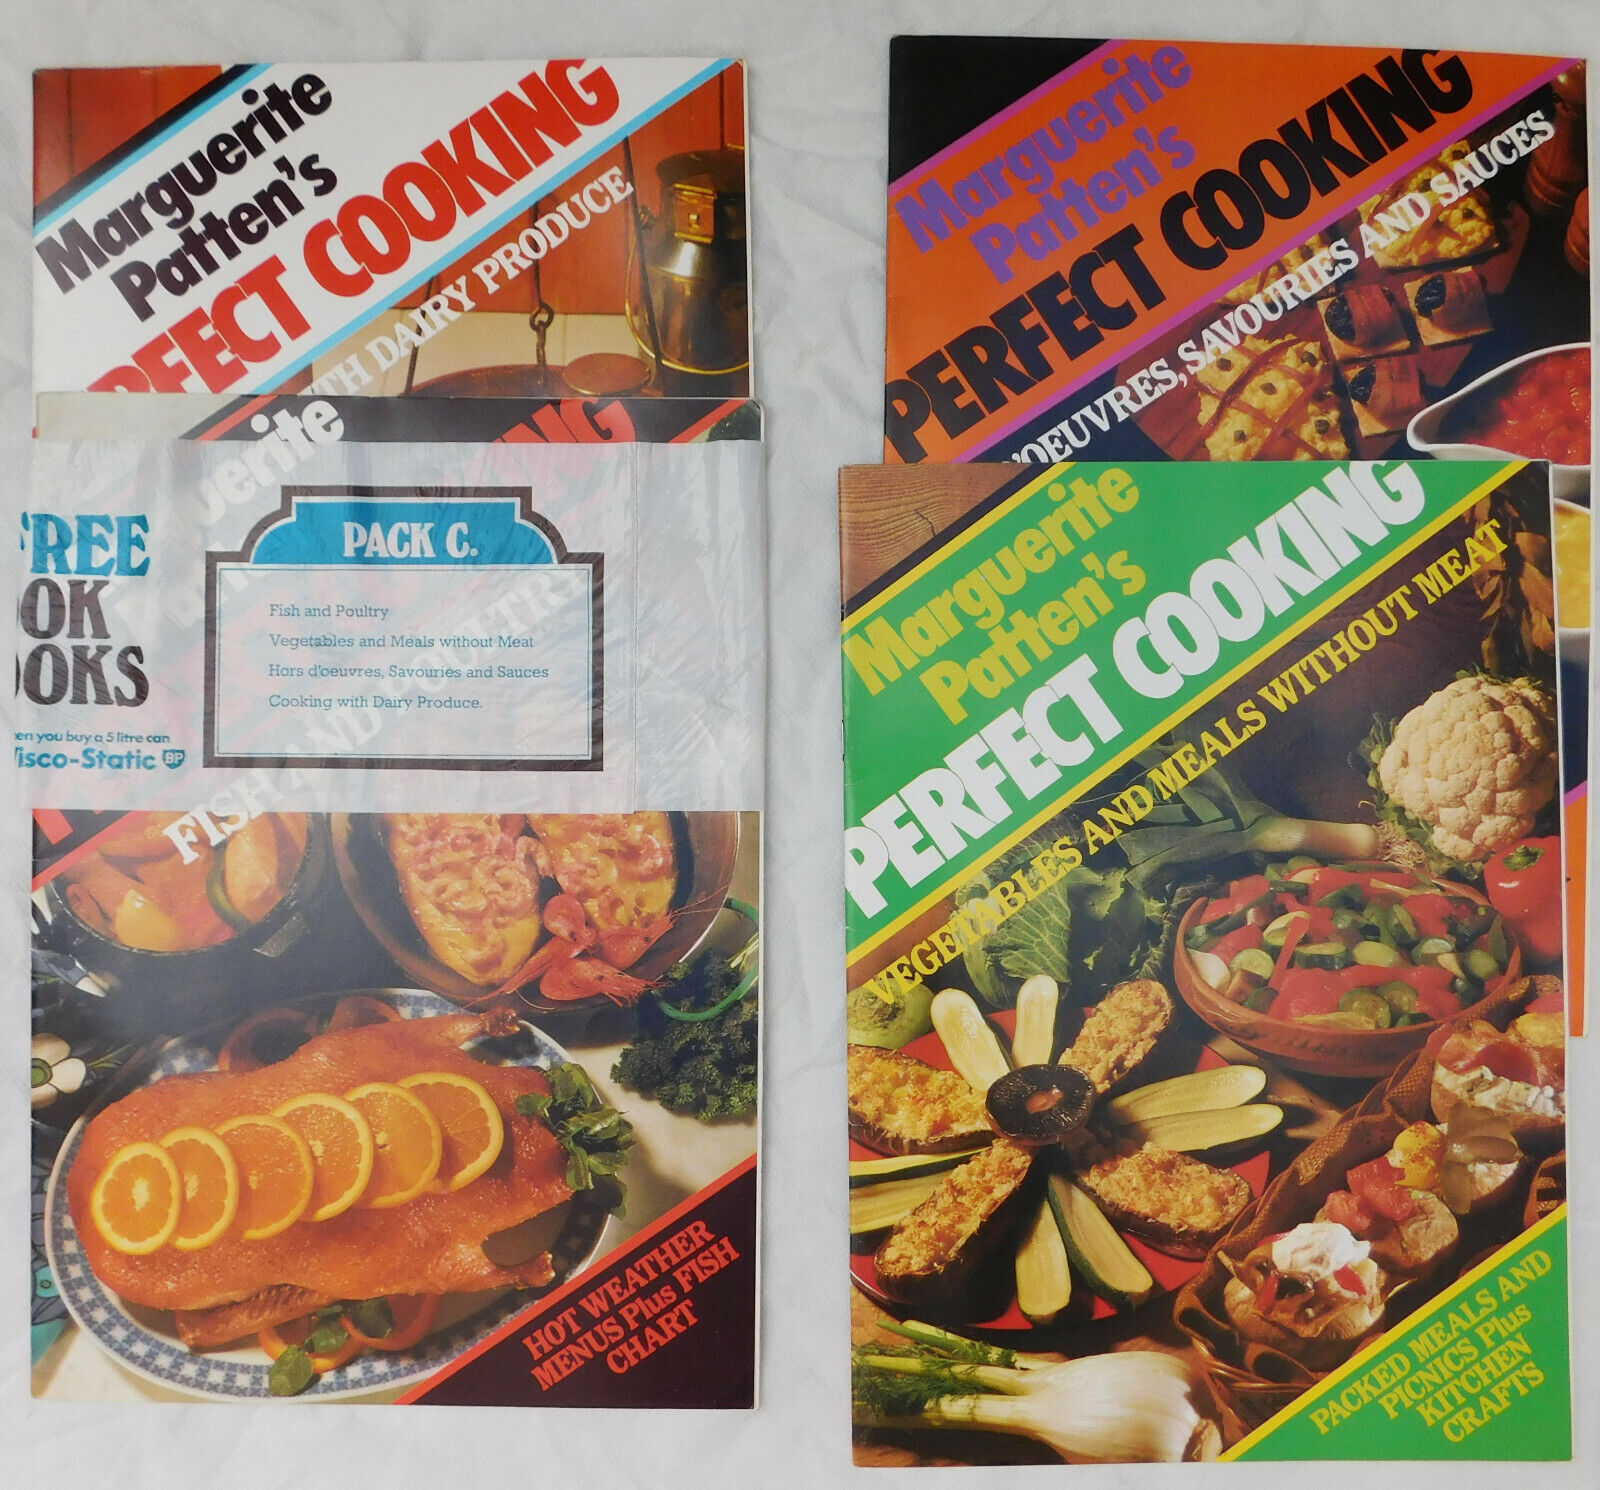 4 recipe books Marguerite Patten's Perfect Cooking Fish Poultry Vegetables Dairy